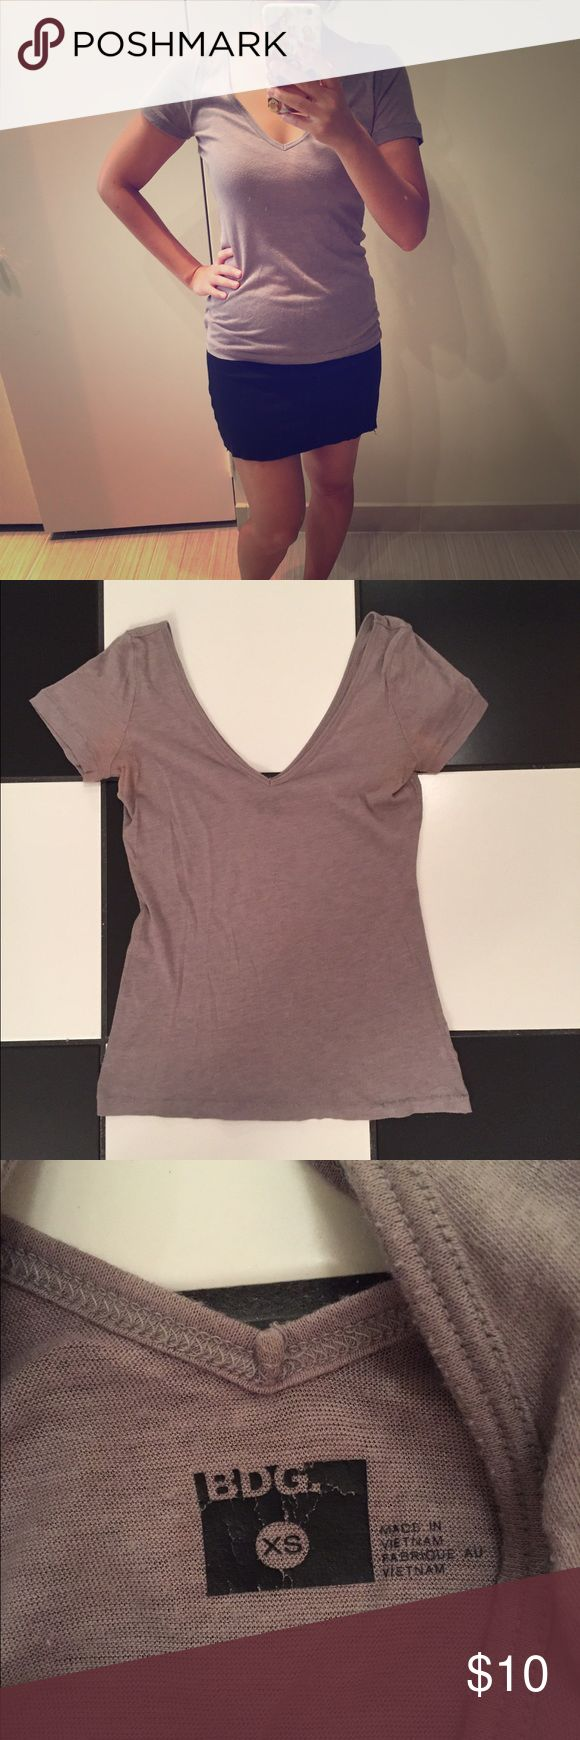 Grey Urban Outifitters Tshirt Grey BDG by Urban Outfitters Tshirt. Gentle wear in good condition. Some wear under the arms as pictured in last photo. Please ask all questions before purchasing and use the offer button, thanks! Urban Outfitters Tops Tees - Short Sleeve